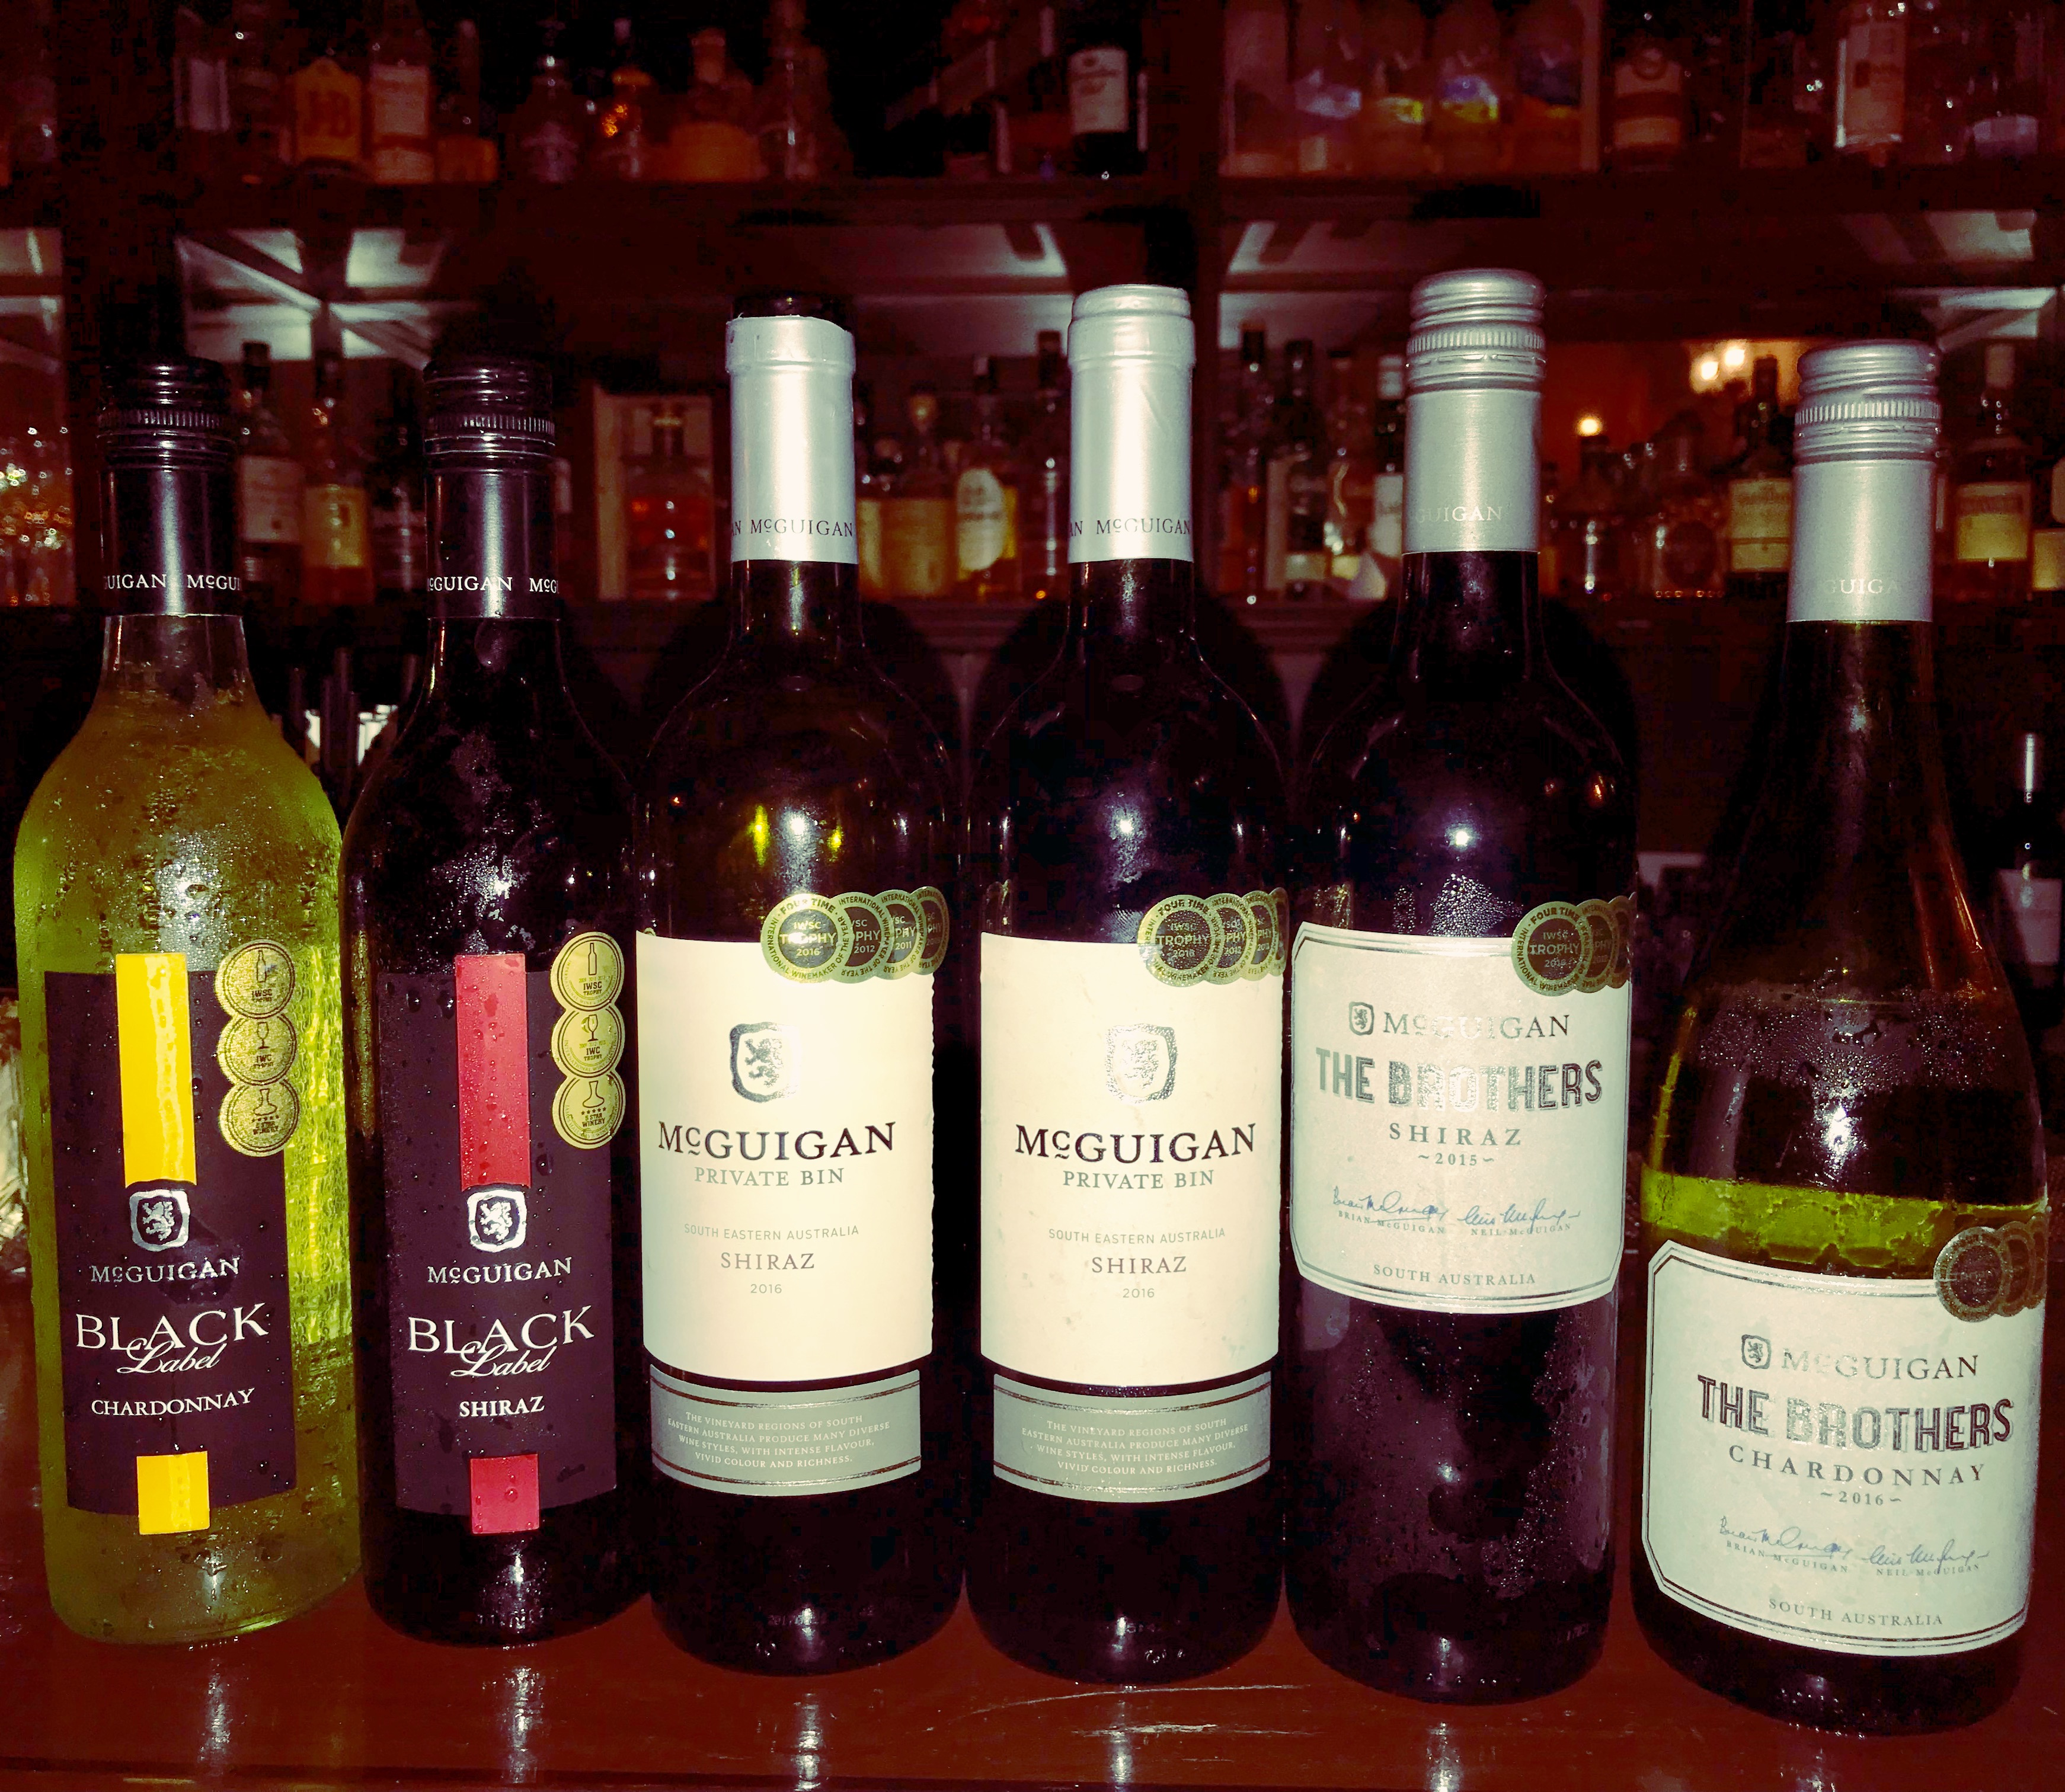 Wine Prices Australia Mcguigan Wines Australias Most Awarded Winery Launches